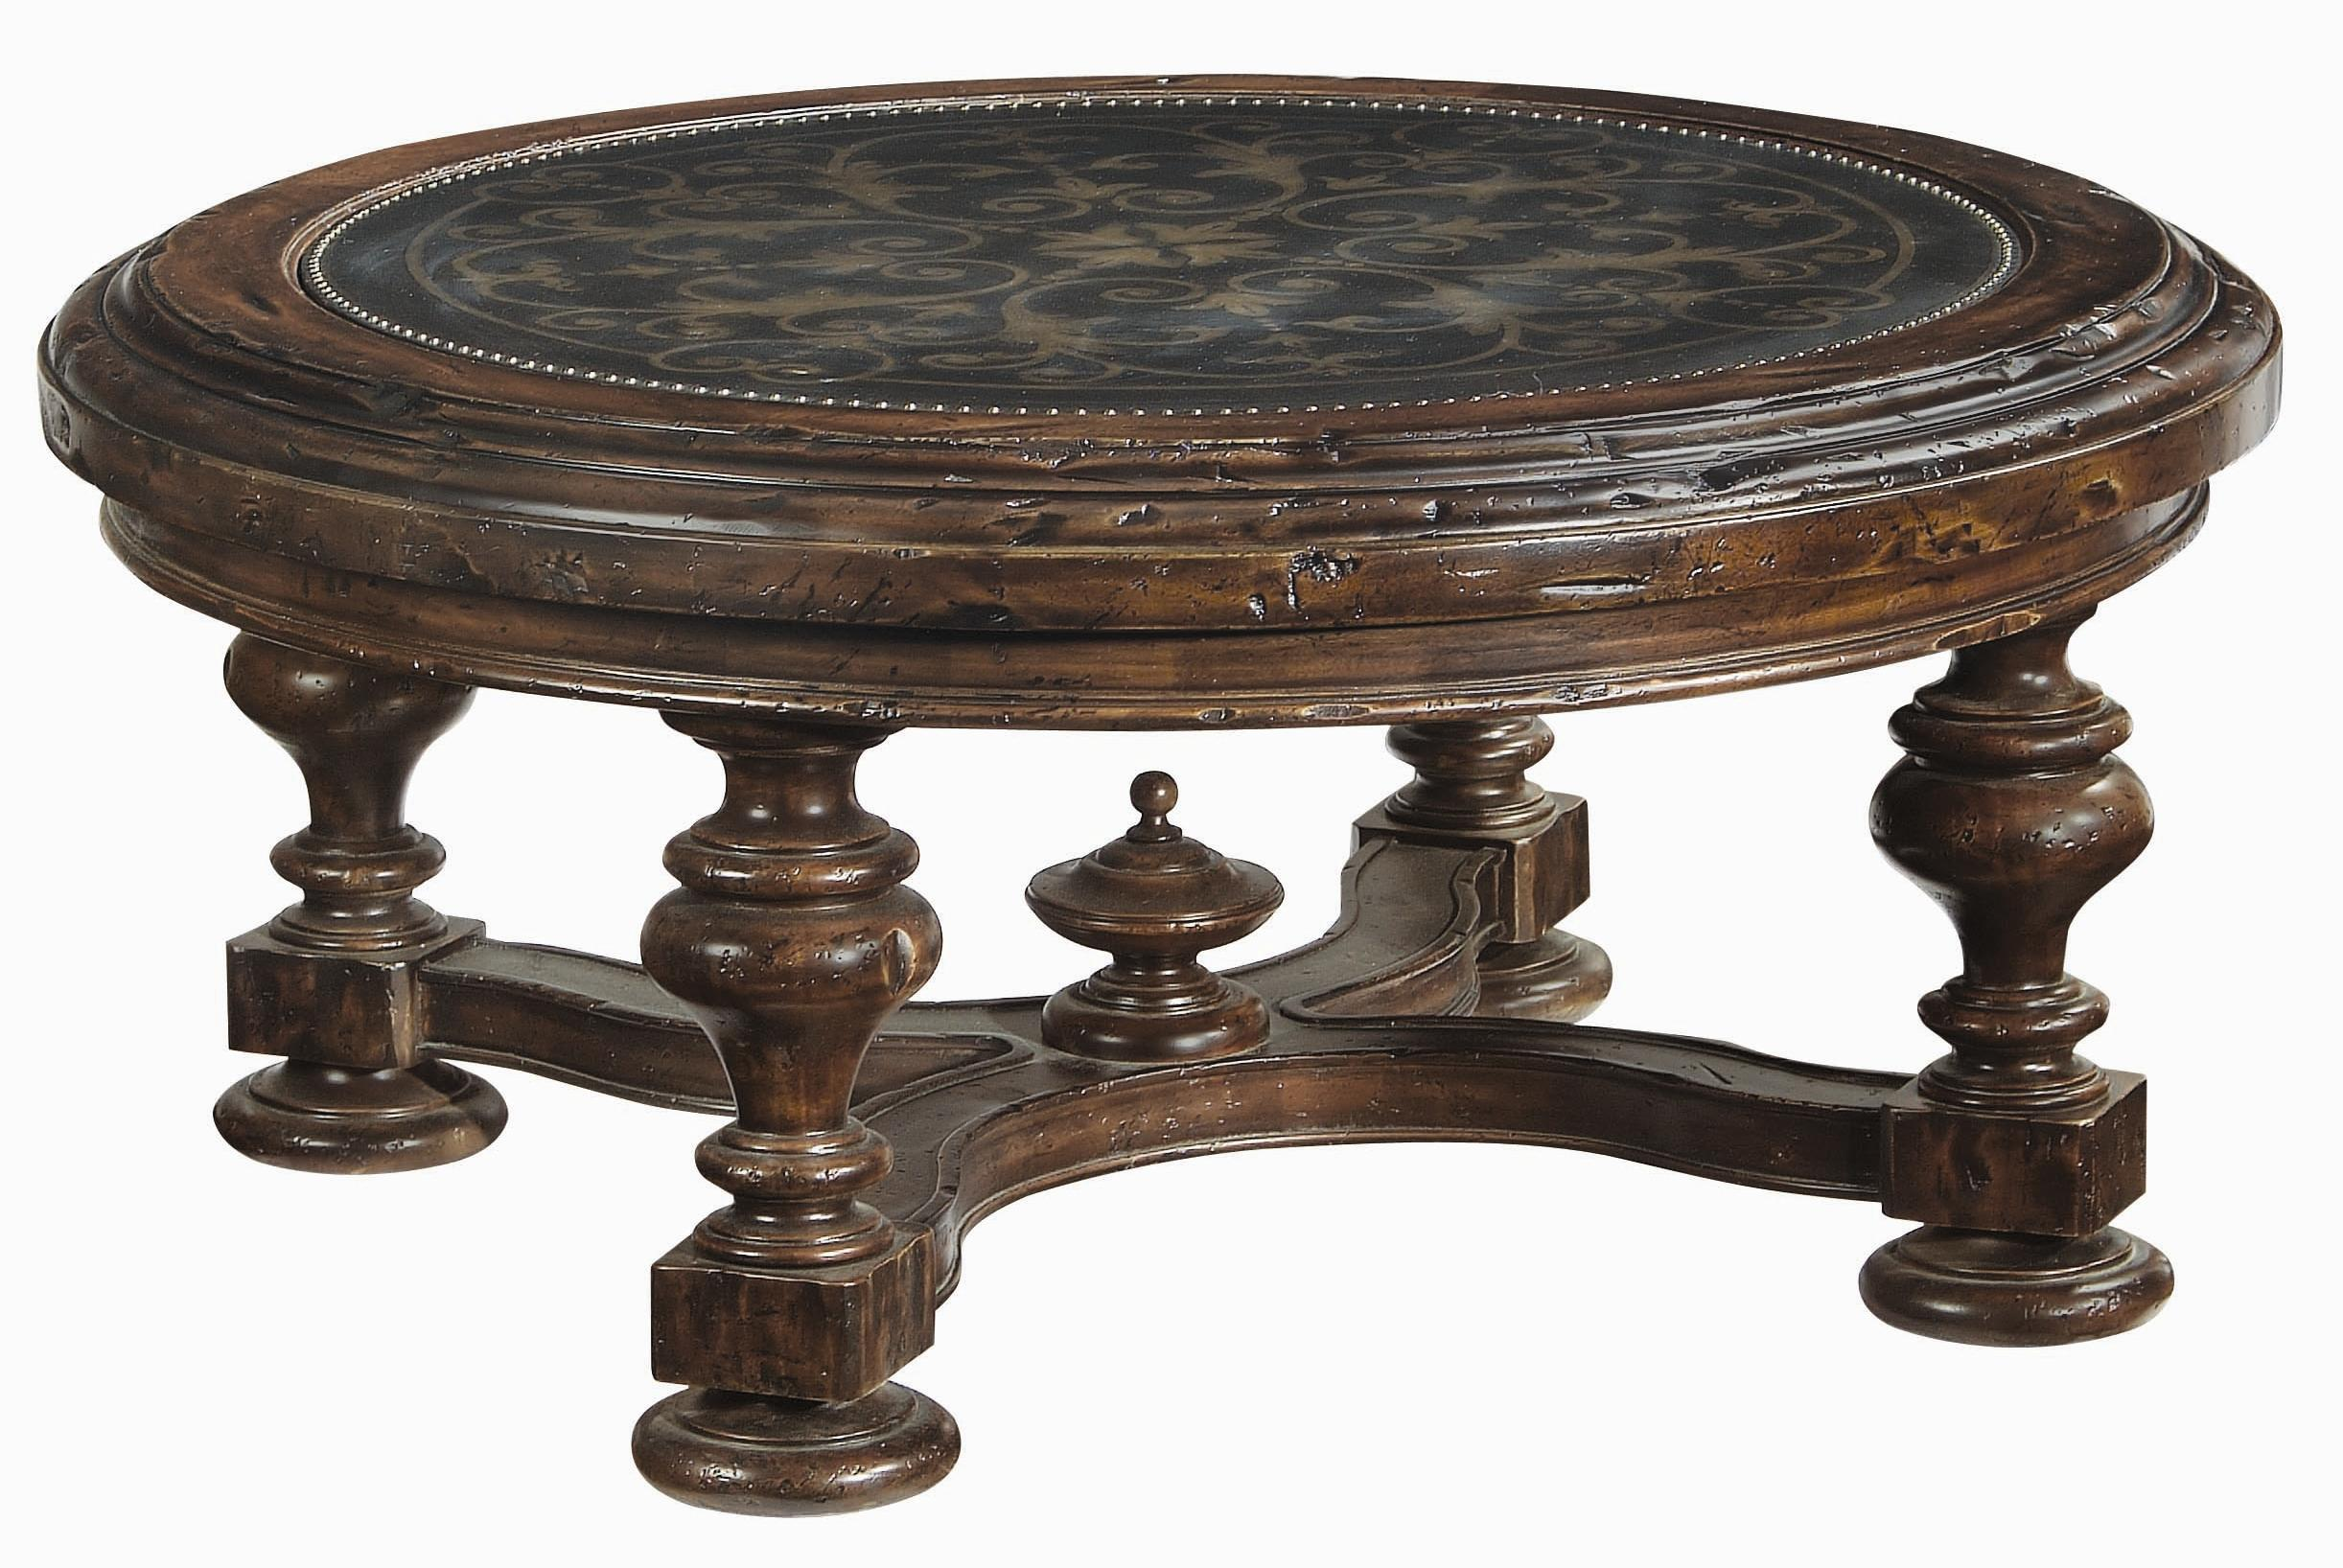 Bernhardt Marquis Round Cocktail Table - Item Number: 437-015